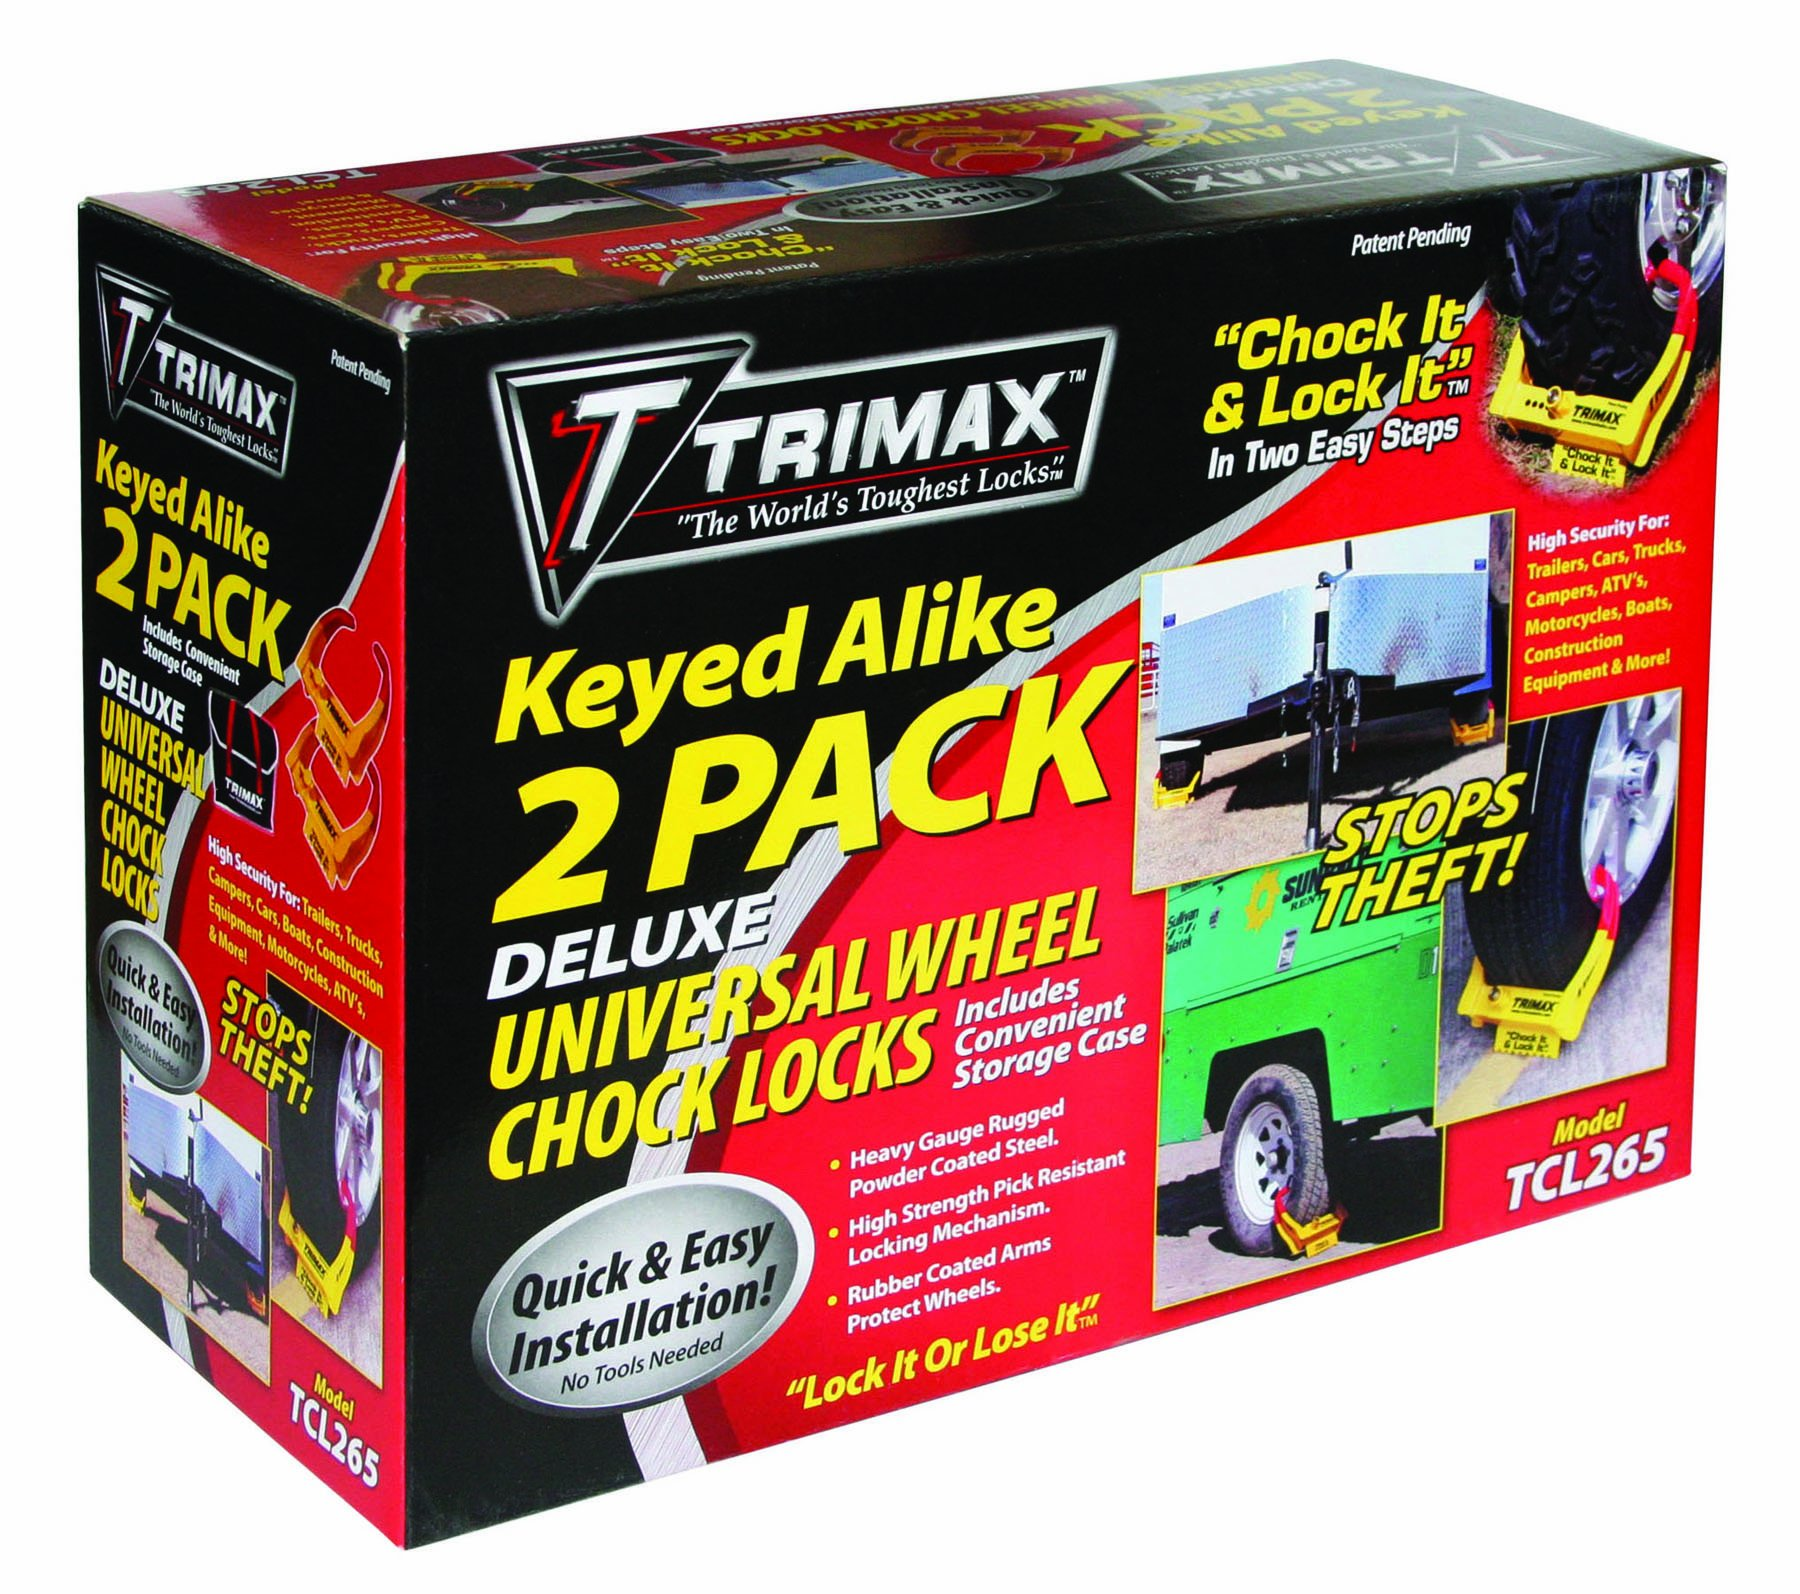 Trimax TCL265 Small Deluxe Keyed Alike Wheel Chock Lock, (Pack of 2) by Trimax